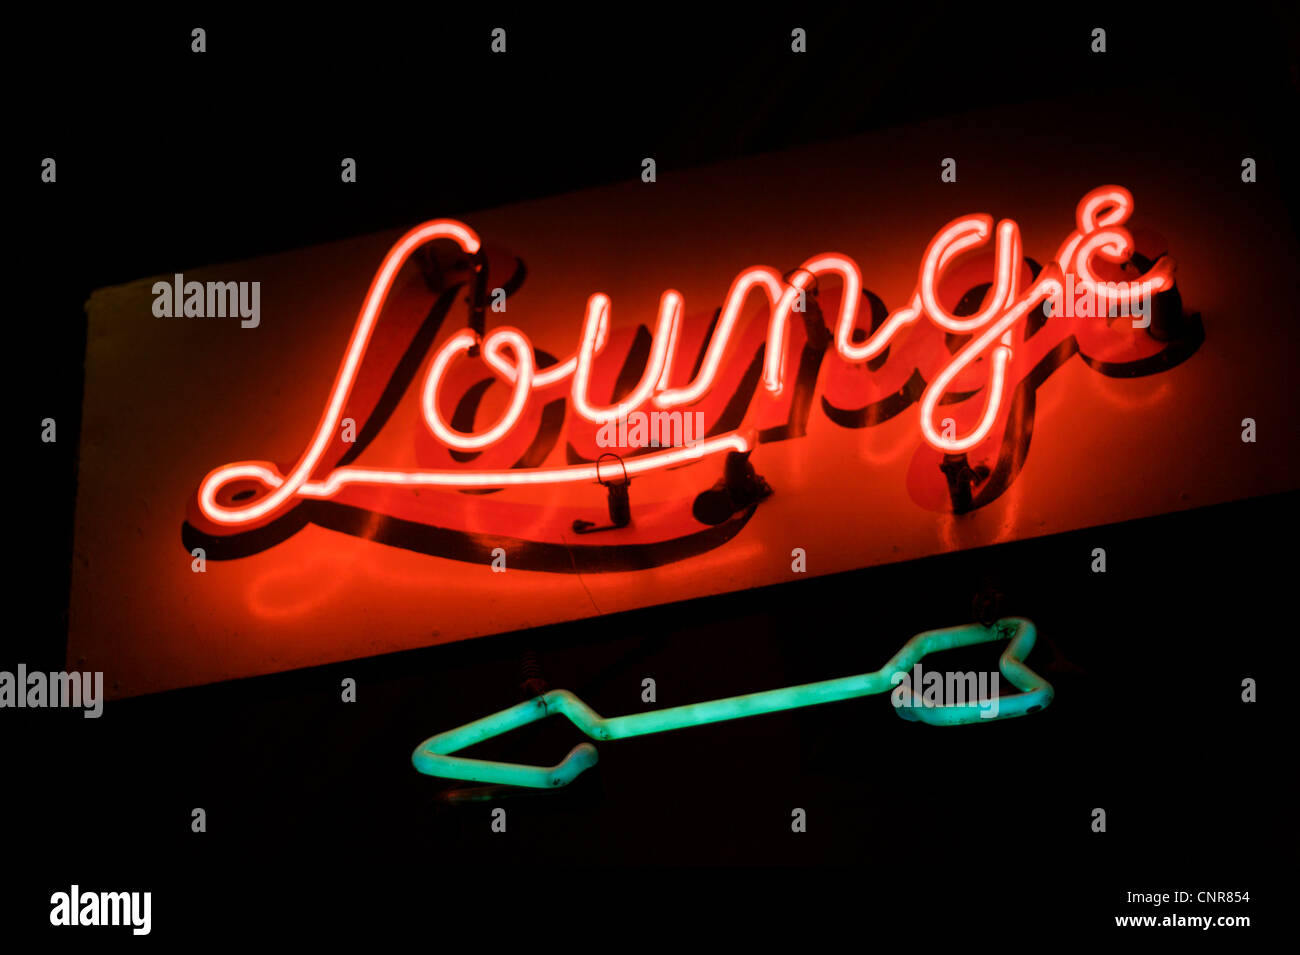 Neon sign reading Lounge - Stock Image